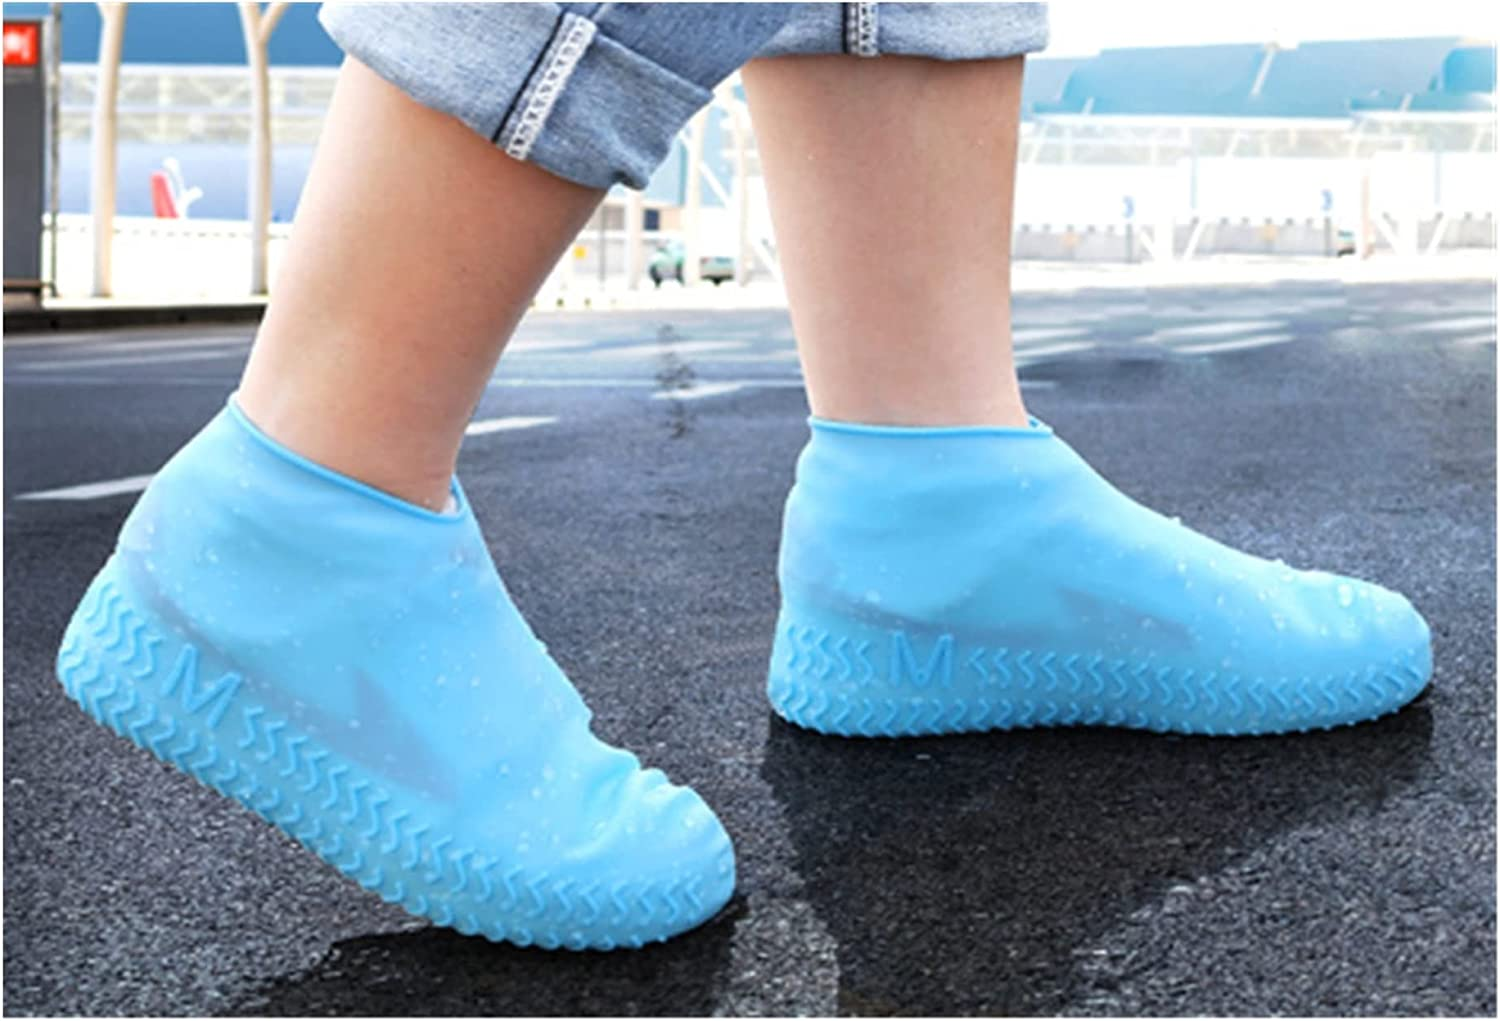 WYDMBH Shoes Cover Sale price Thicken Silicone Rain Waterproof Large discharge sale Shoe Boots C